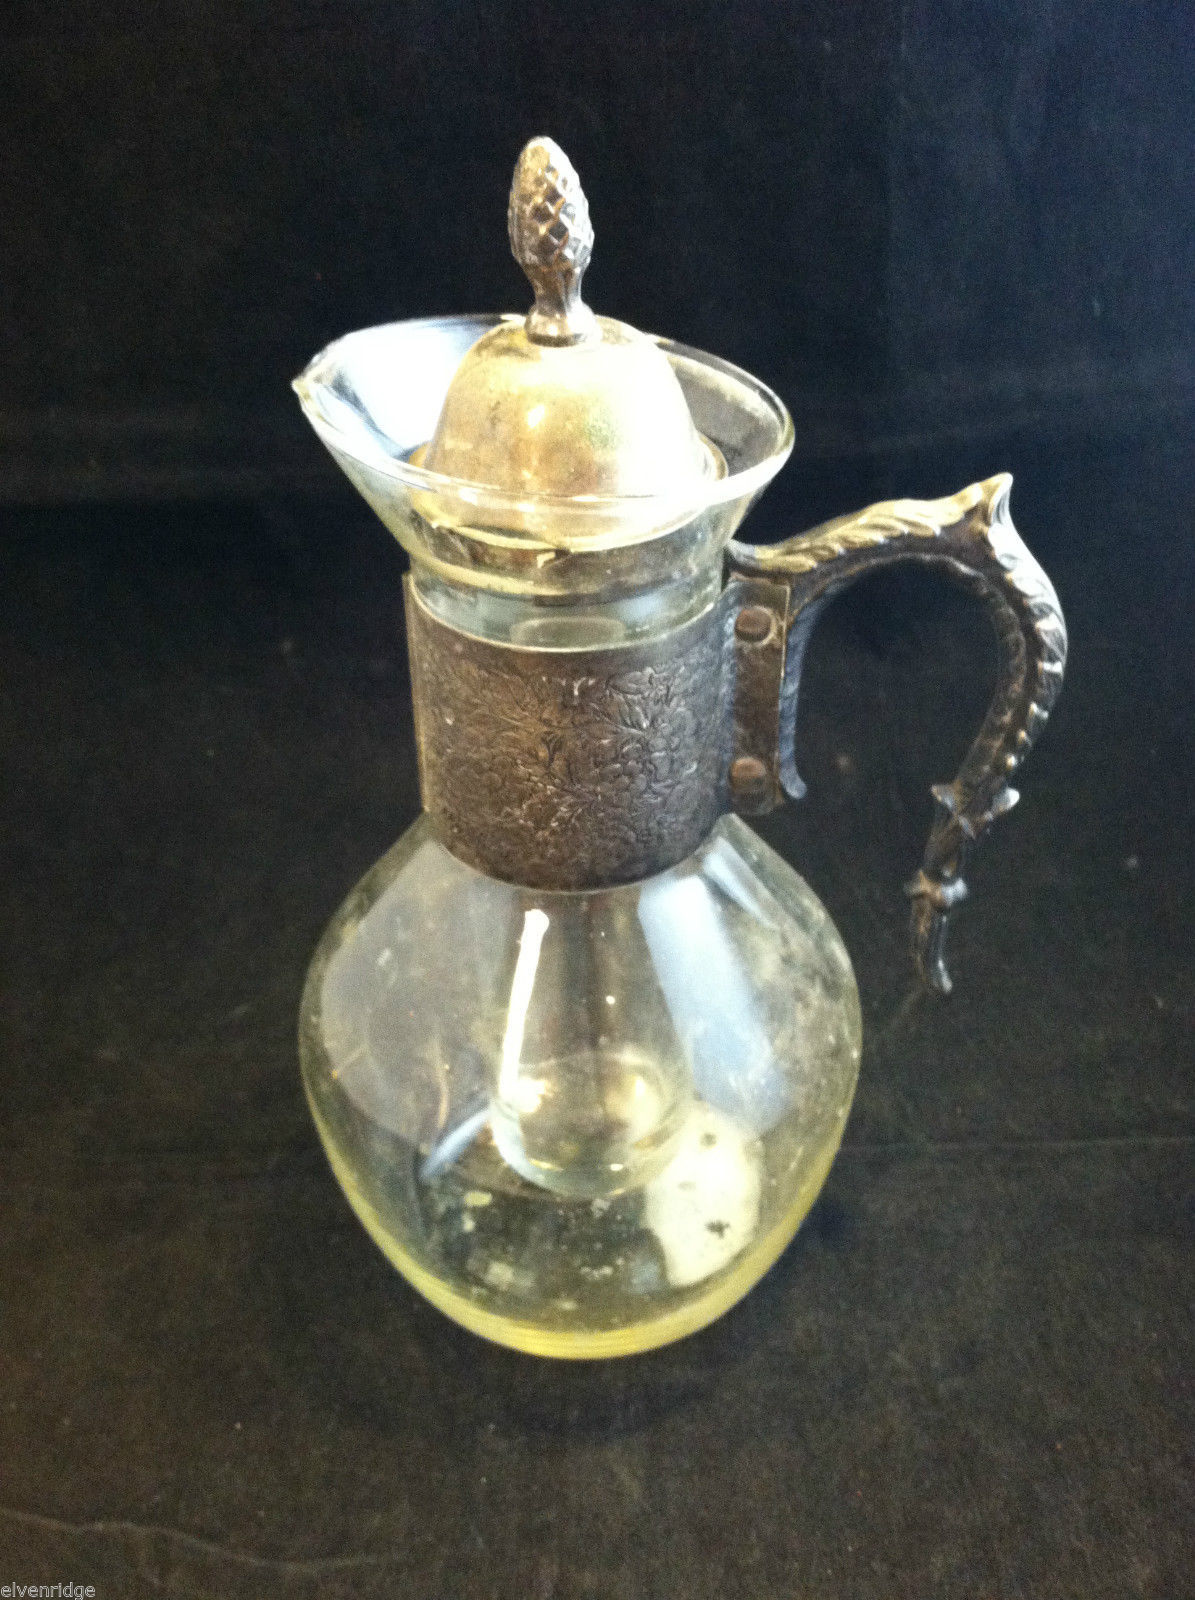 Vintage Metal and Glass Beverage Server with Ice Container in Middle